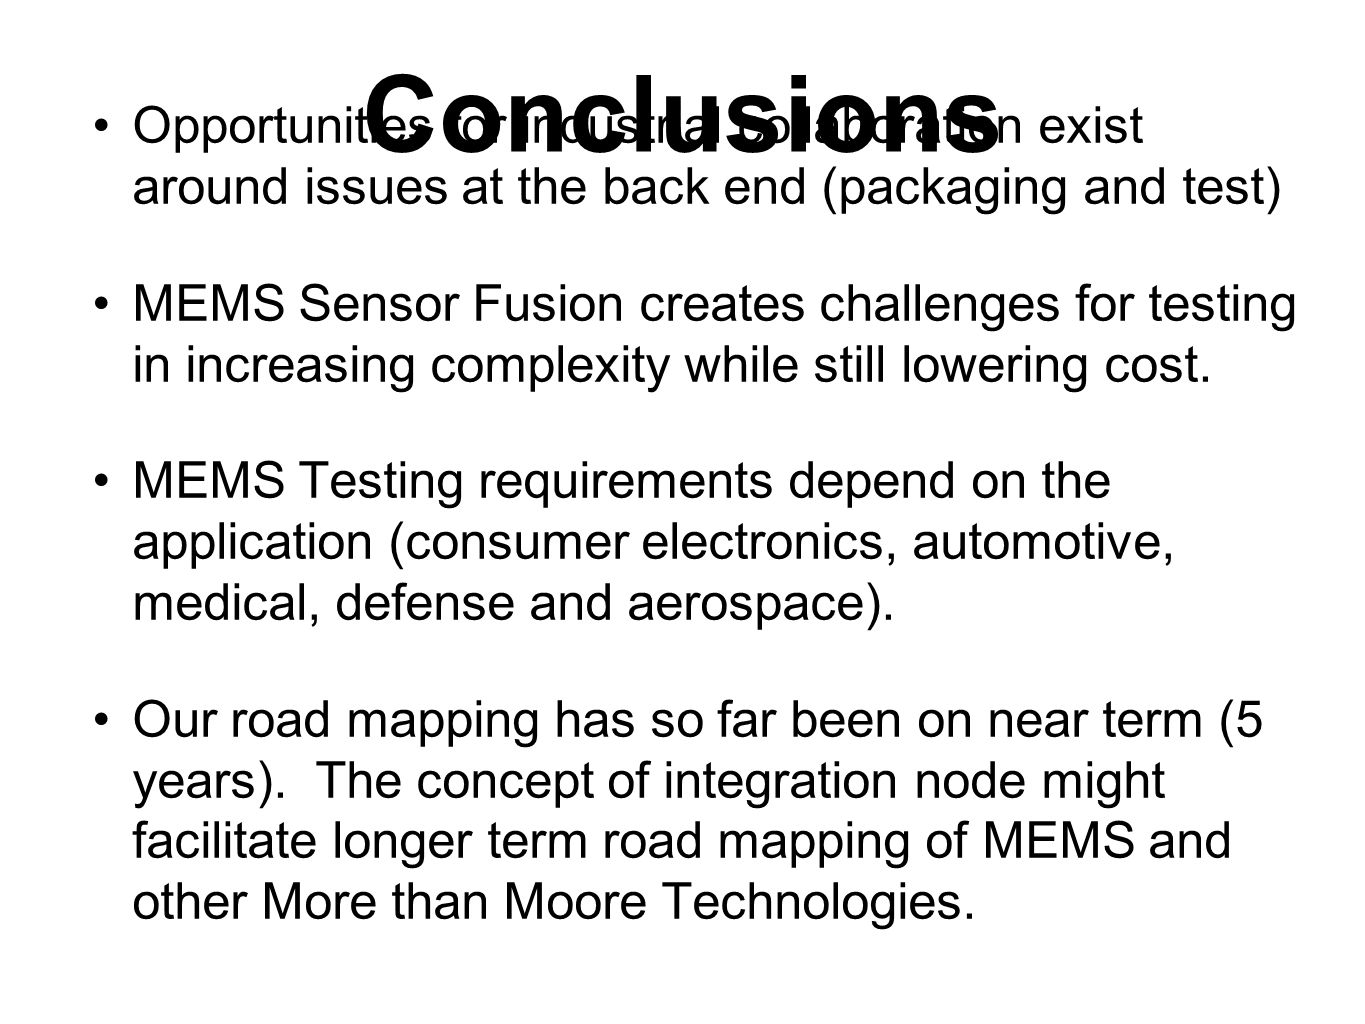 Conclusions Opportunities for industrial collaboration exist around issues at the back end (packaging and test)